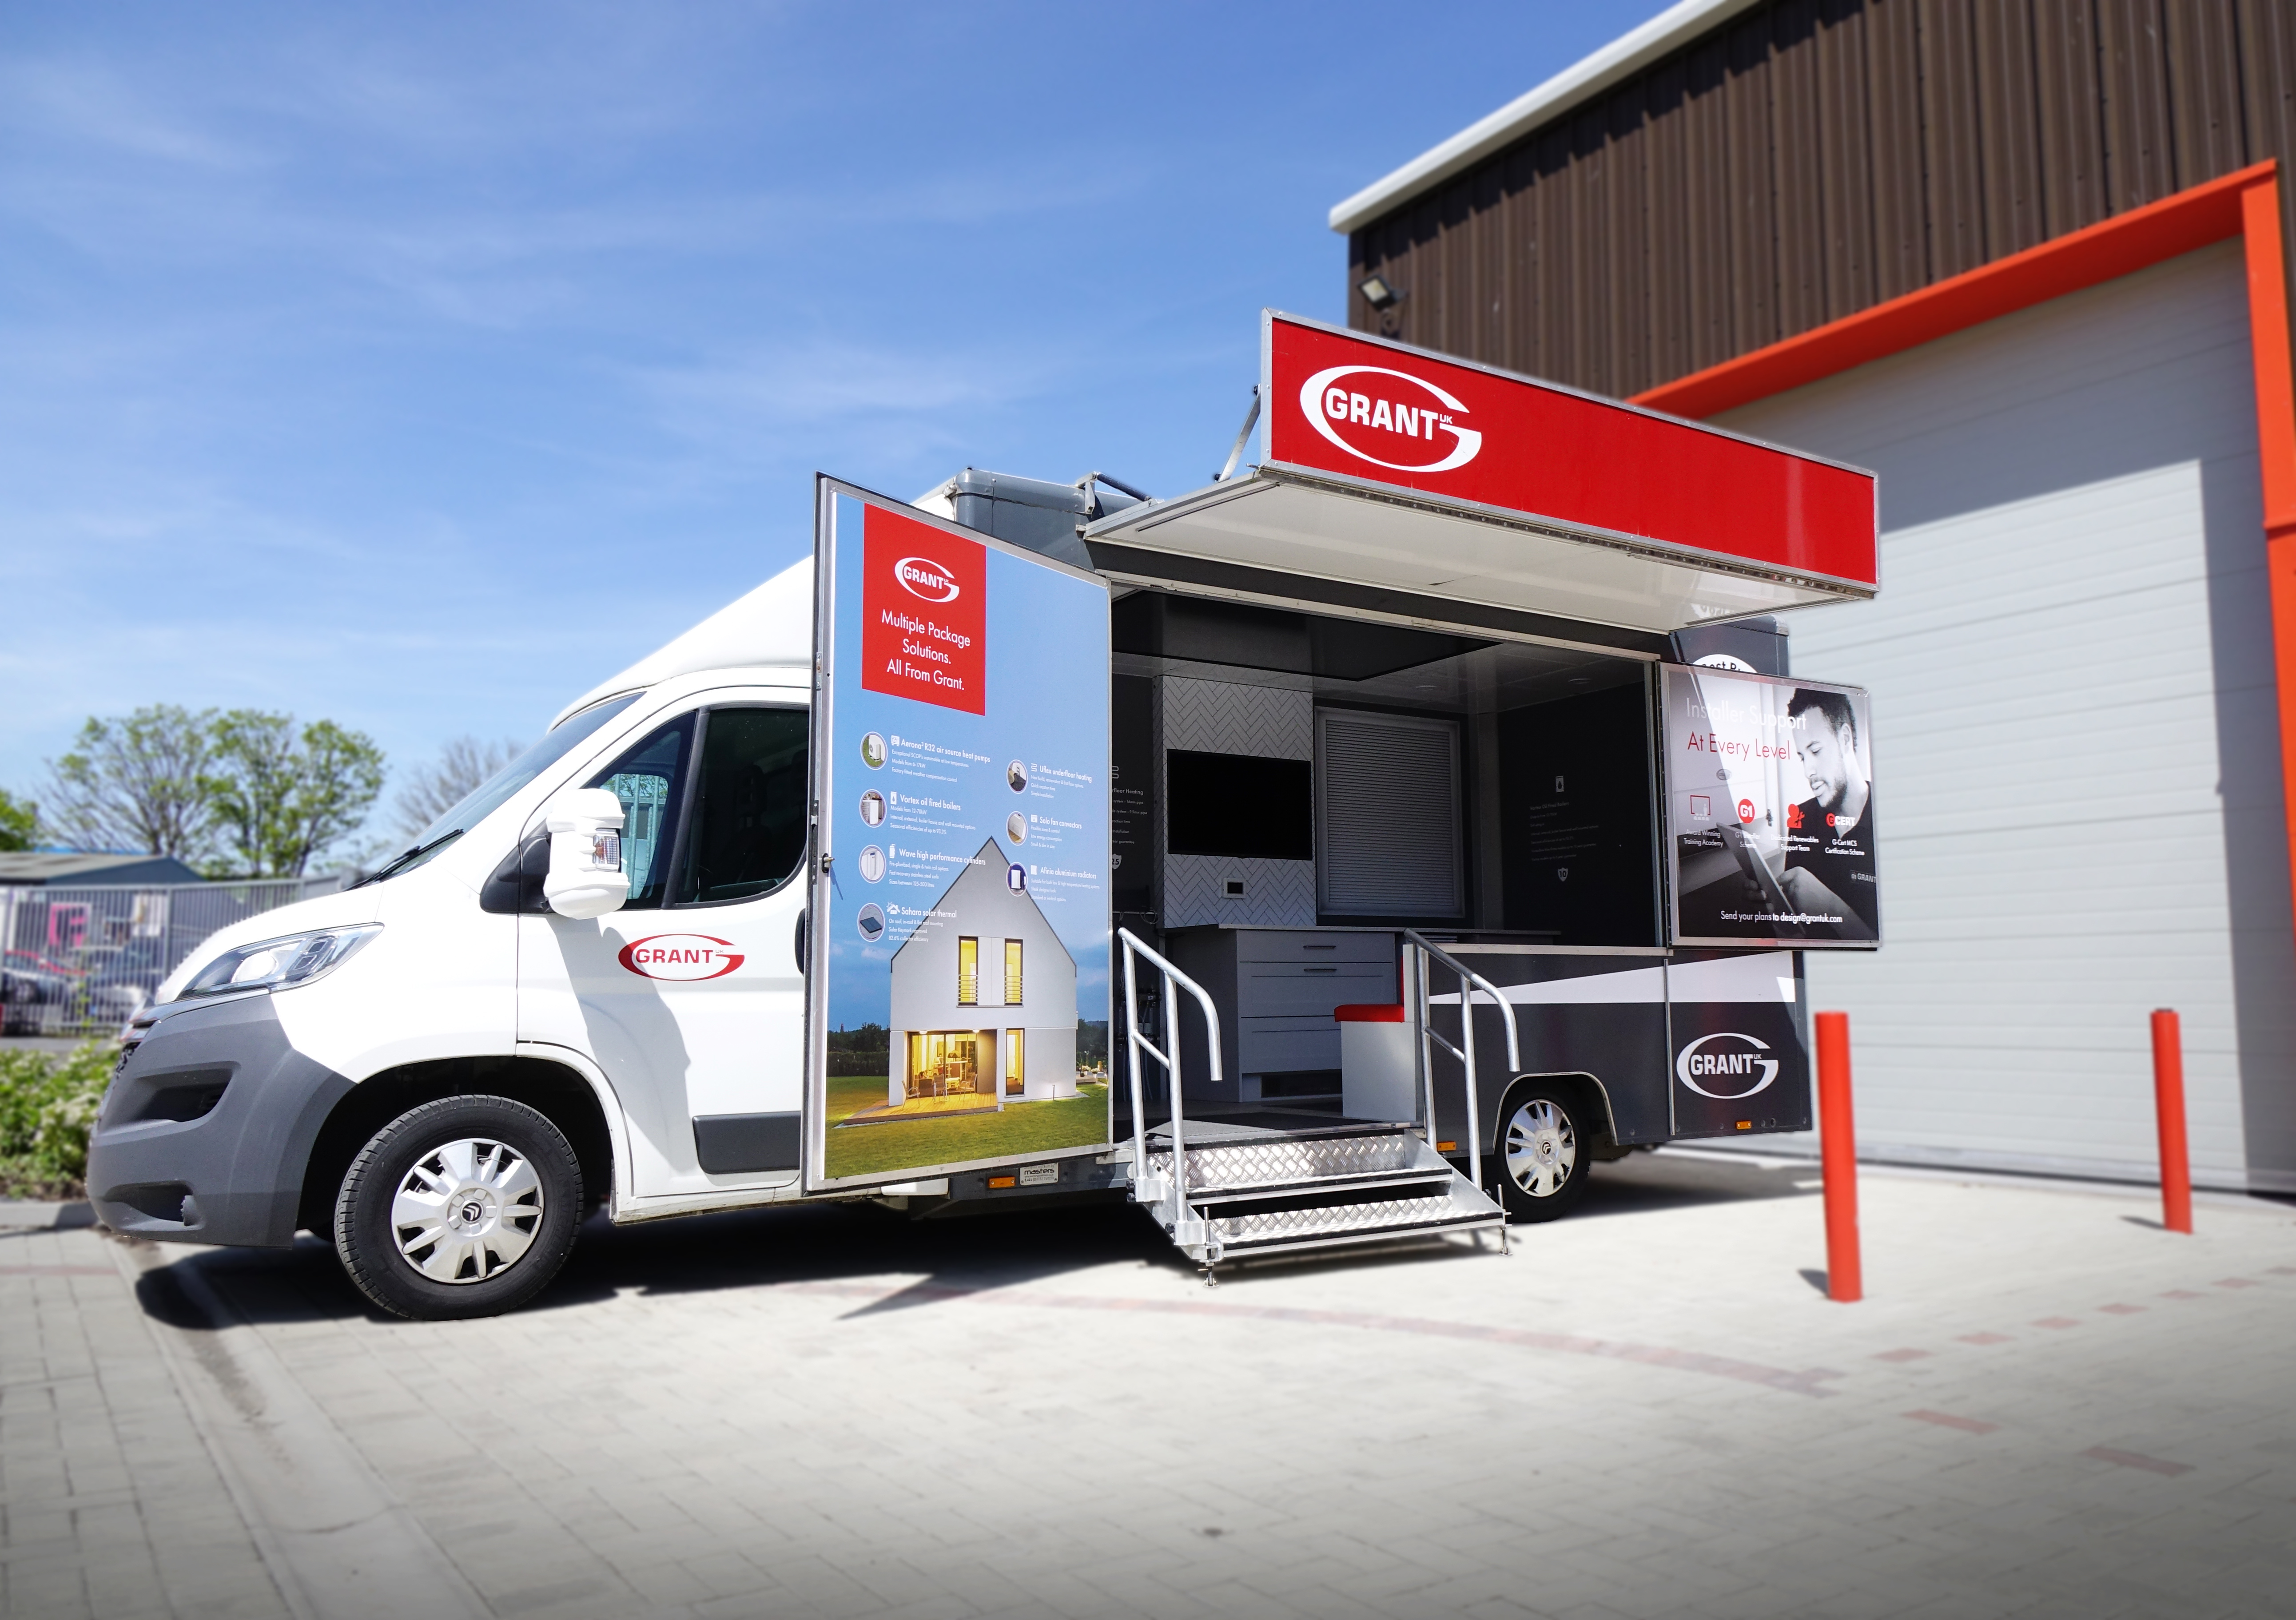 Grant UK launches Package Solutions Roadshow